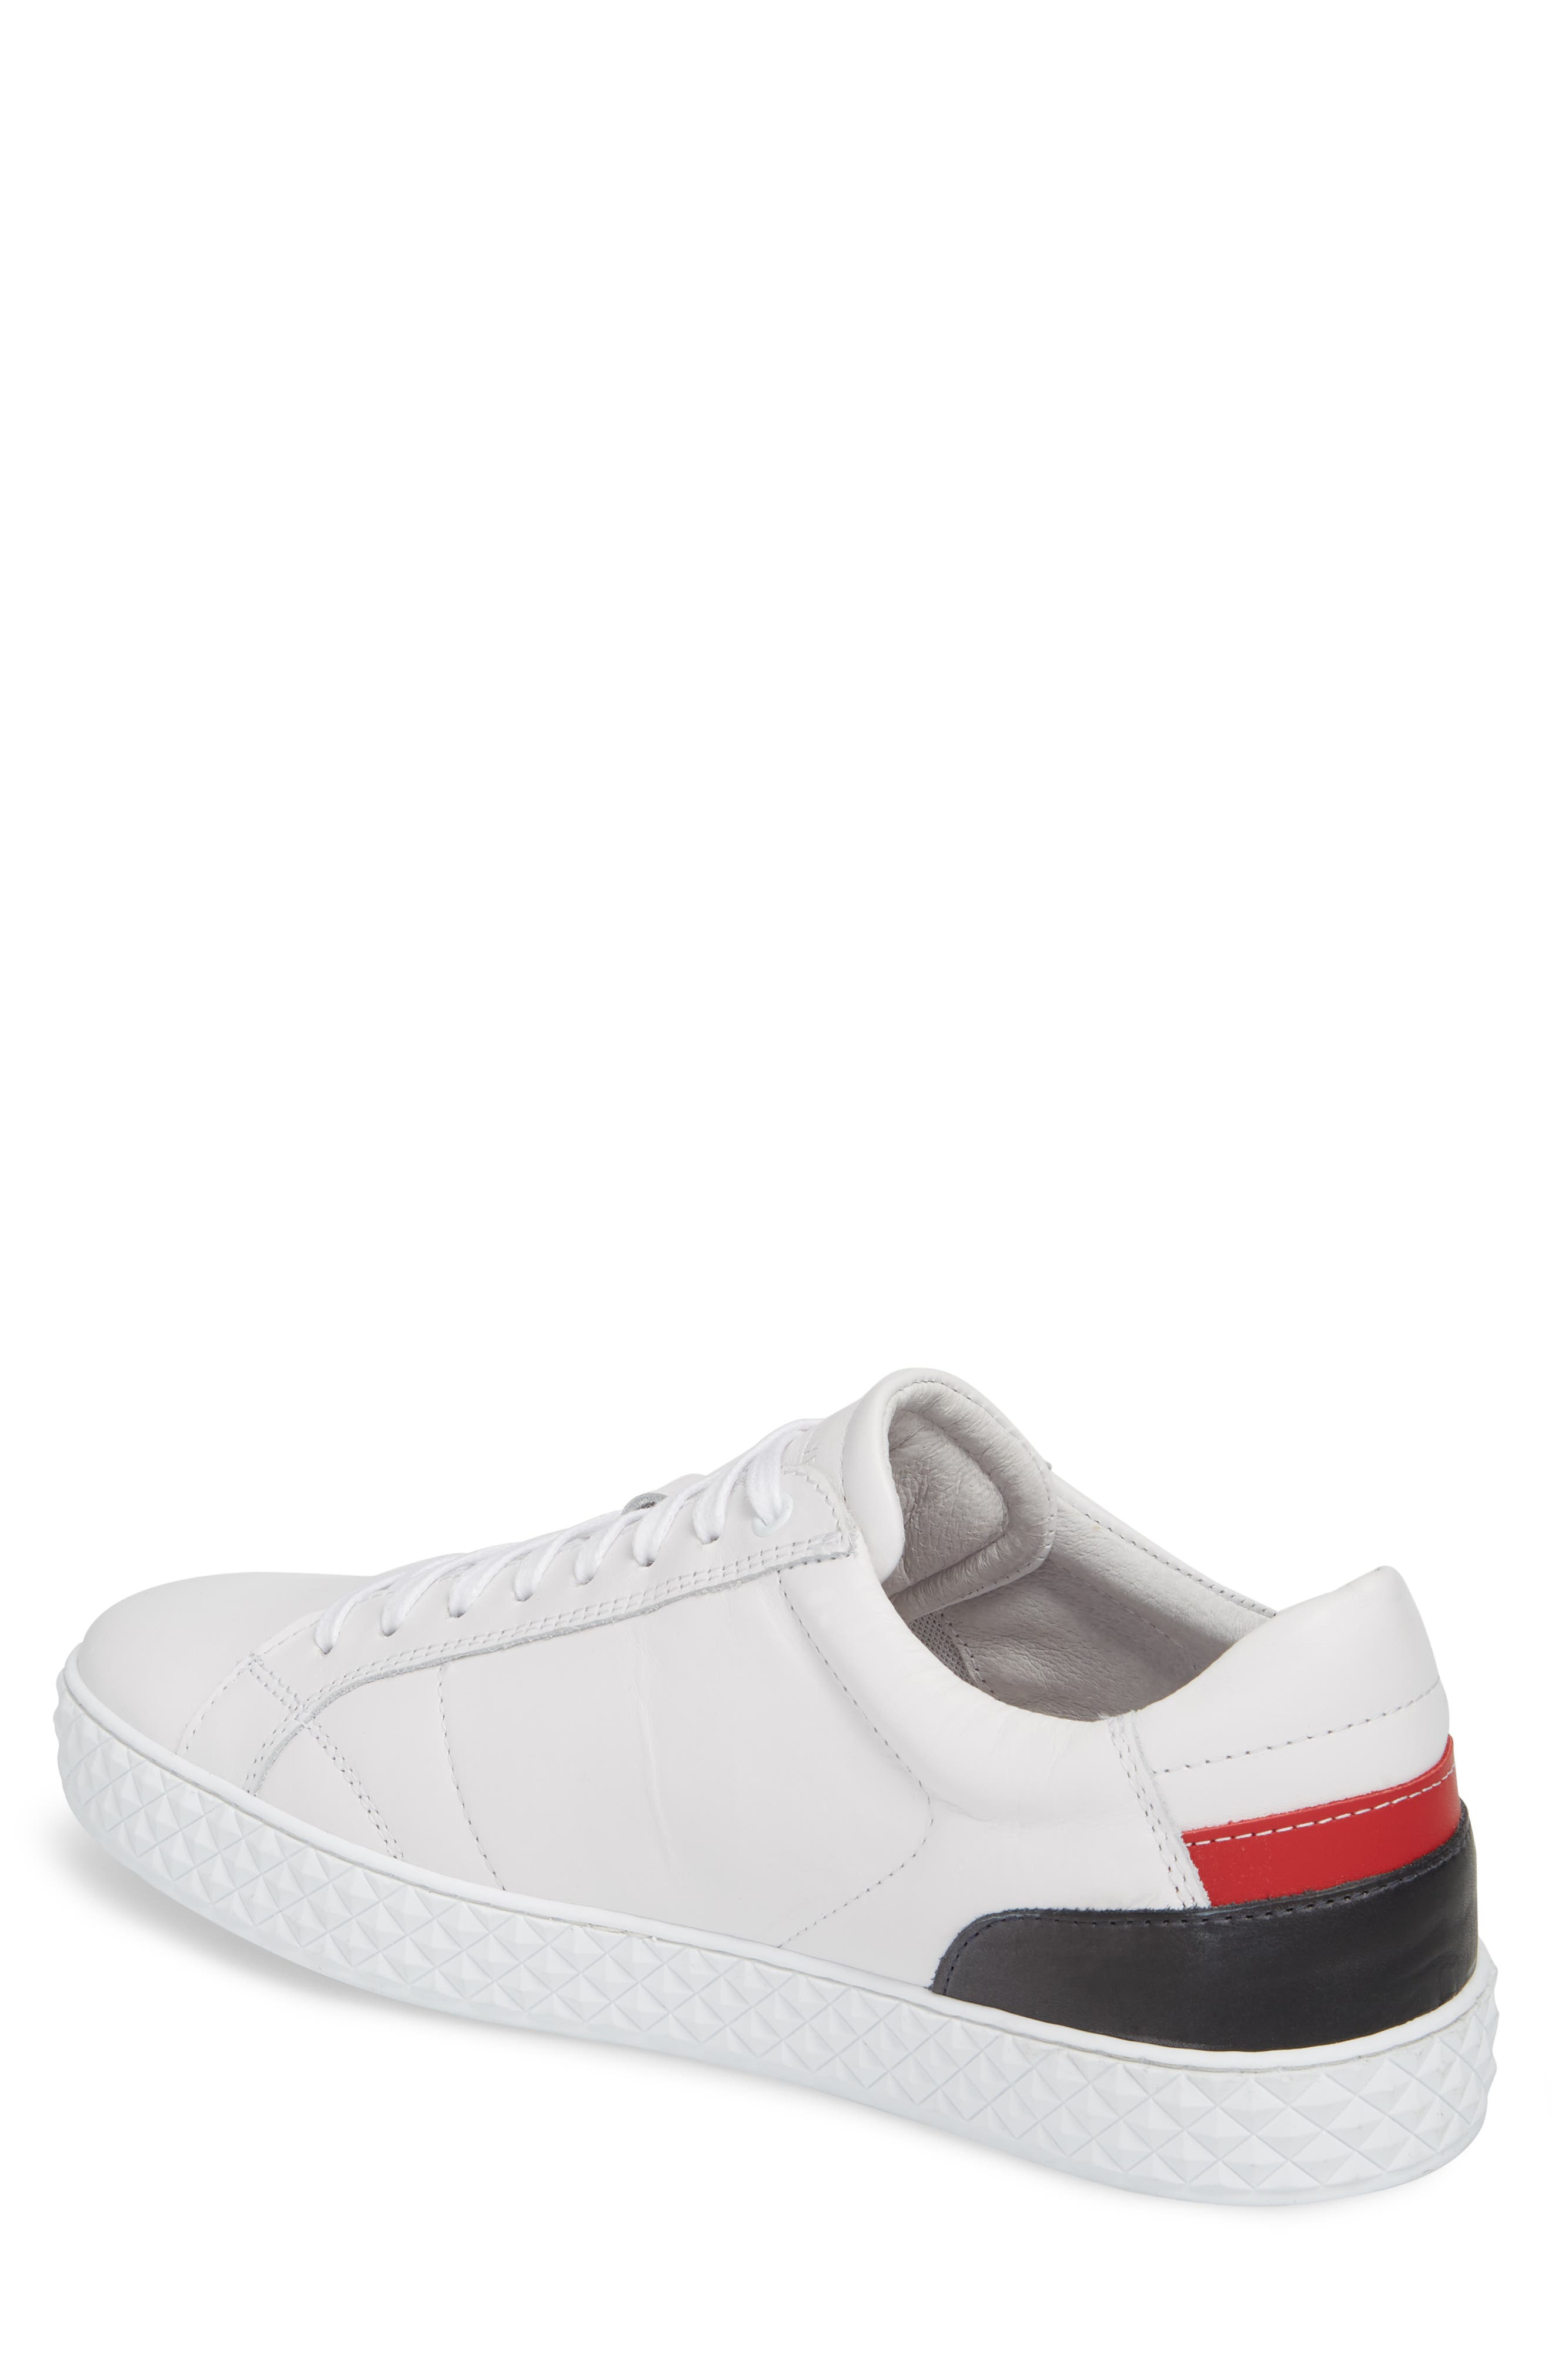 Bratislava Low Top Sneaker,                             Alternate thumbnail 2, color,                             OPTIC WHITE/ RED/ NAVY LEATHER